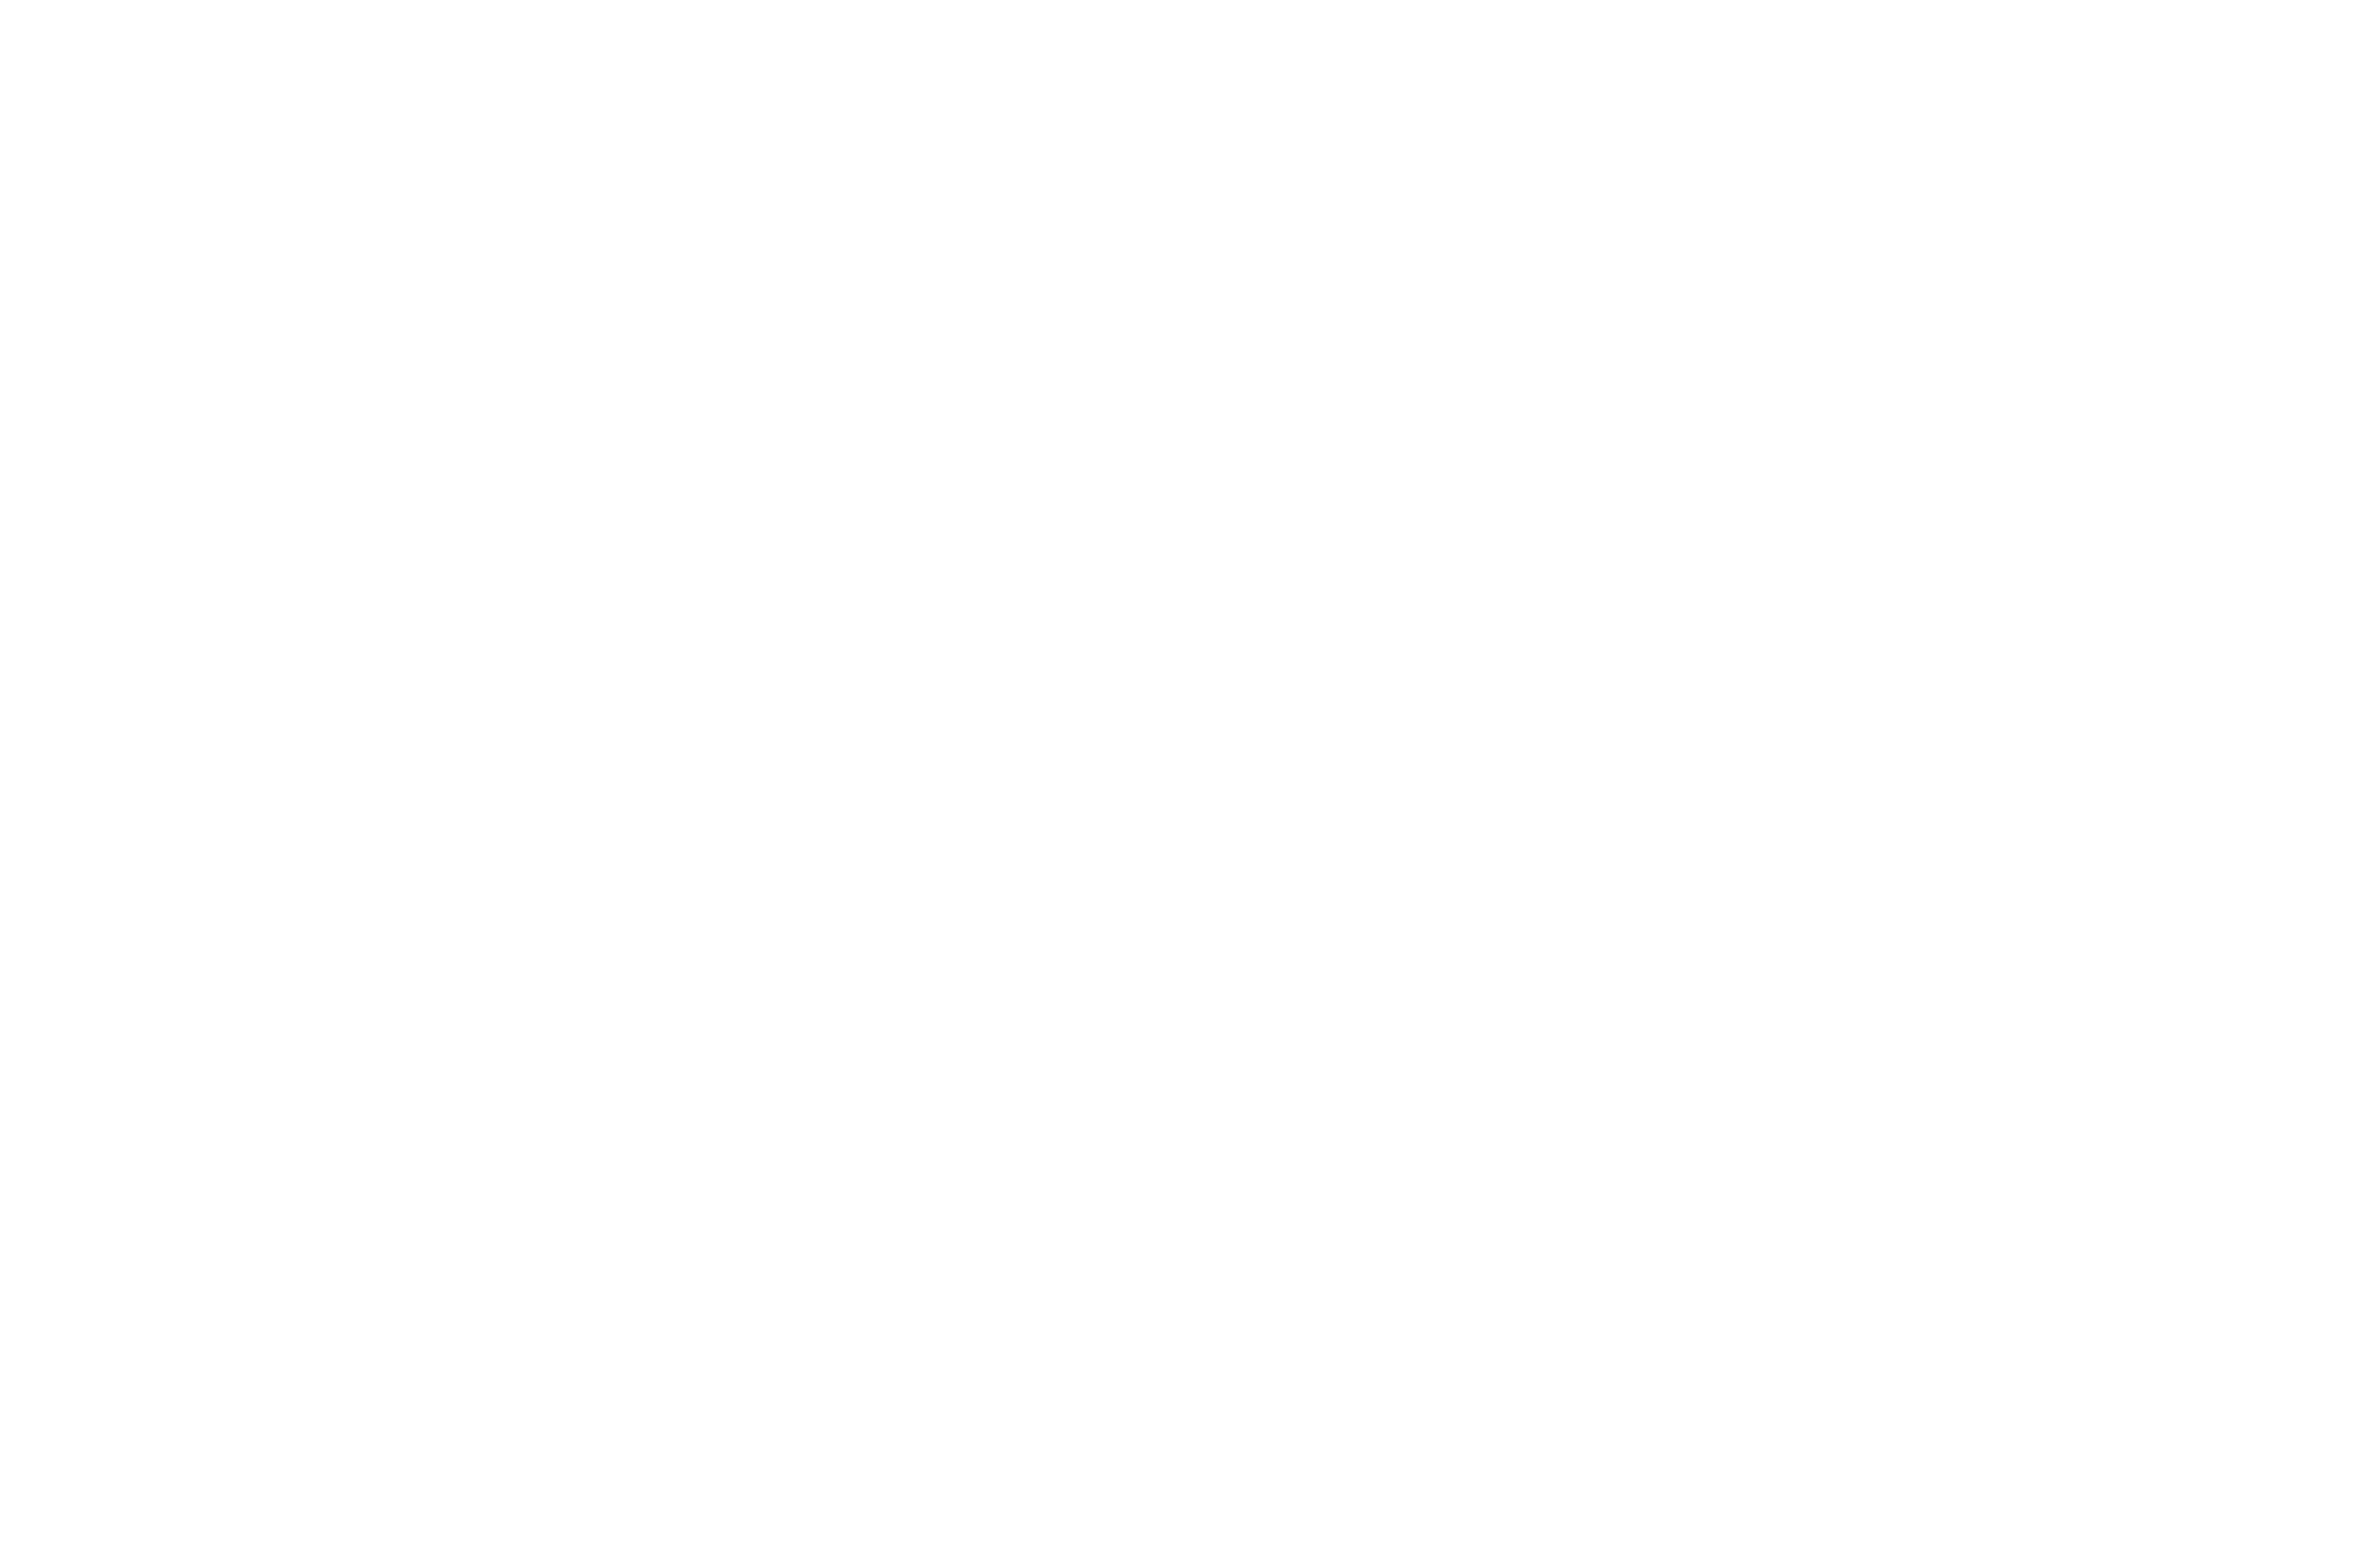 officialselection-adirondackfilmfestival-2018 (1).png